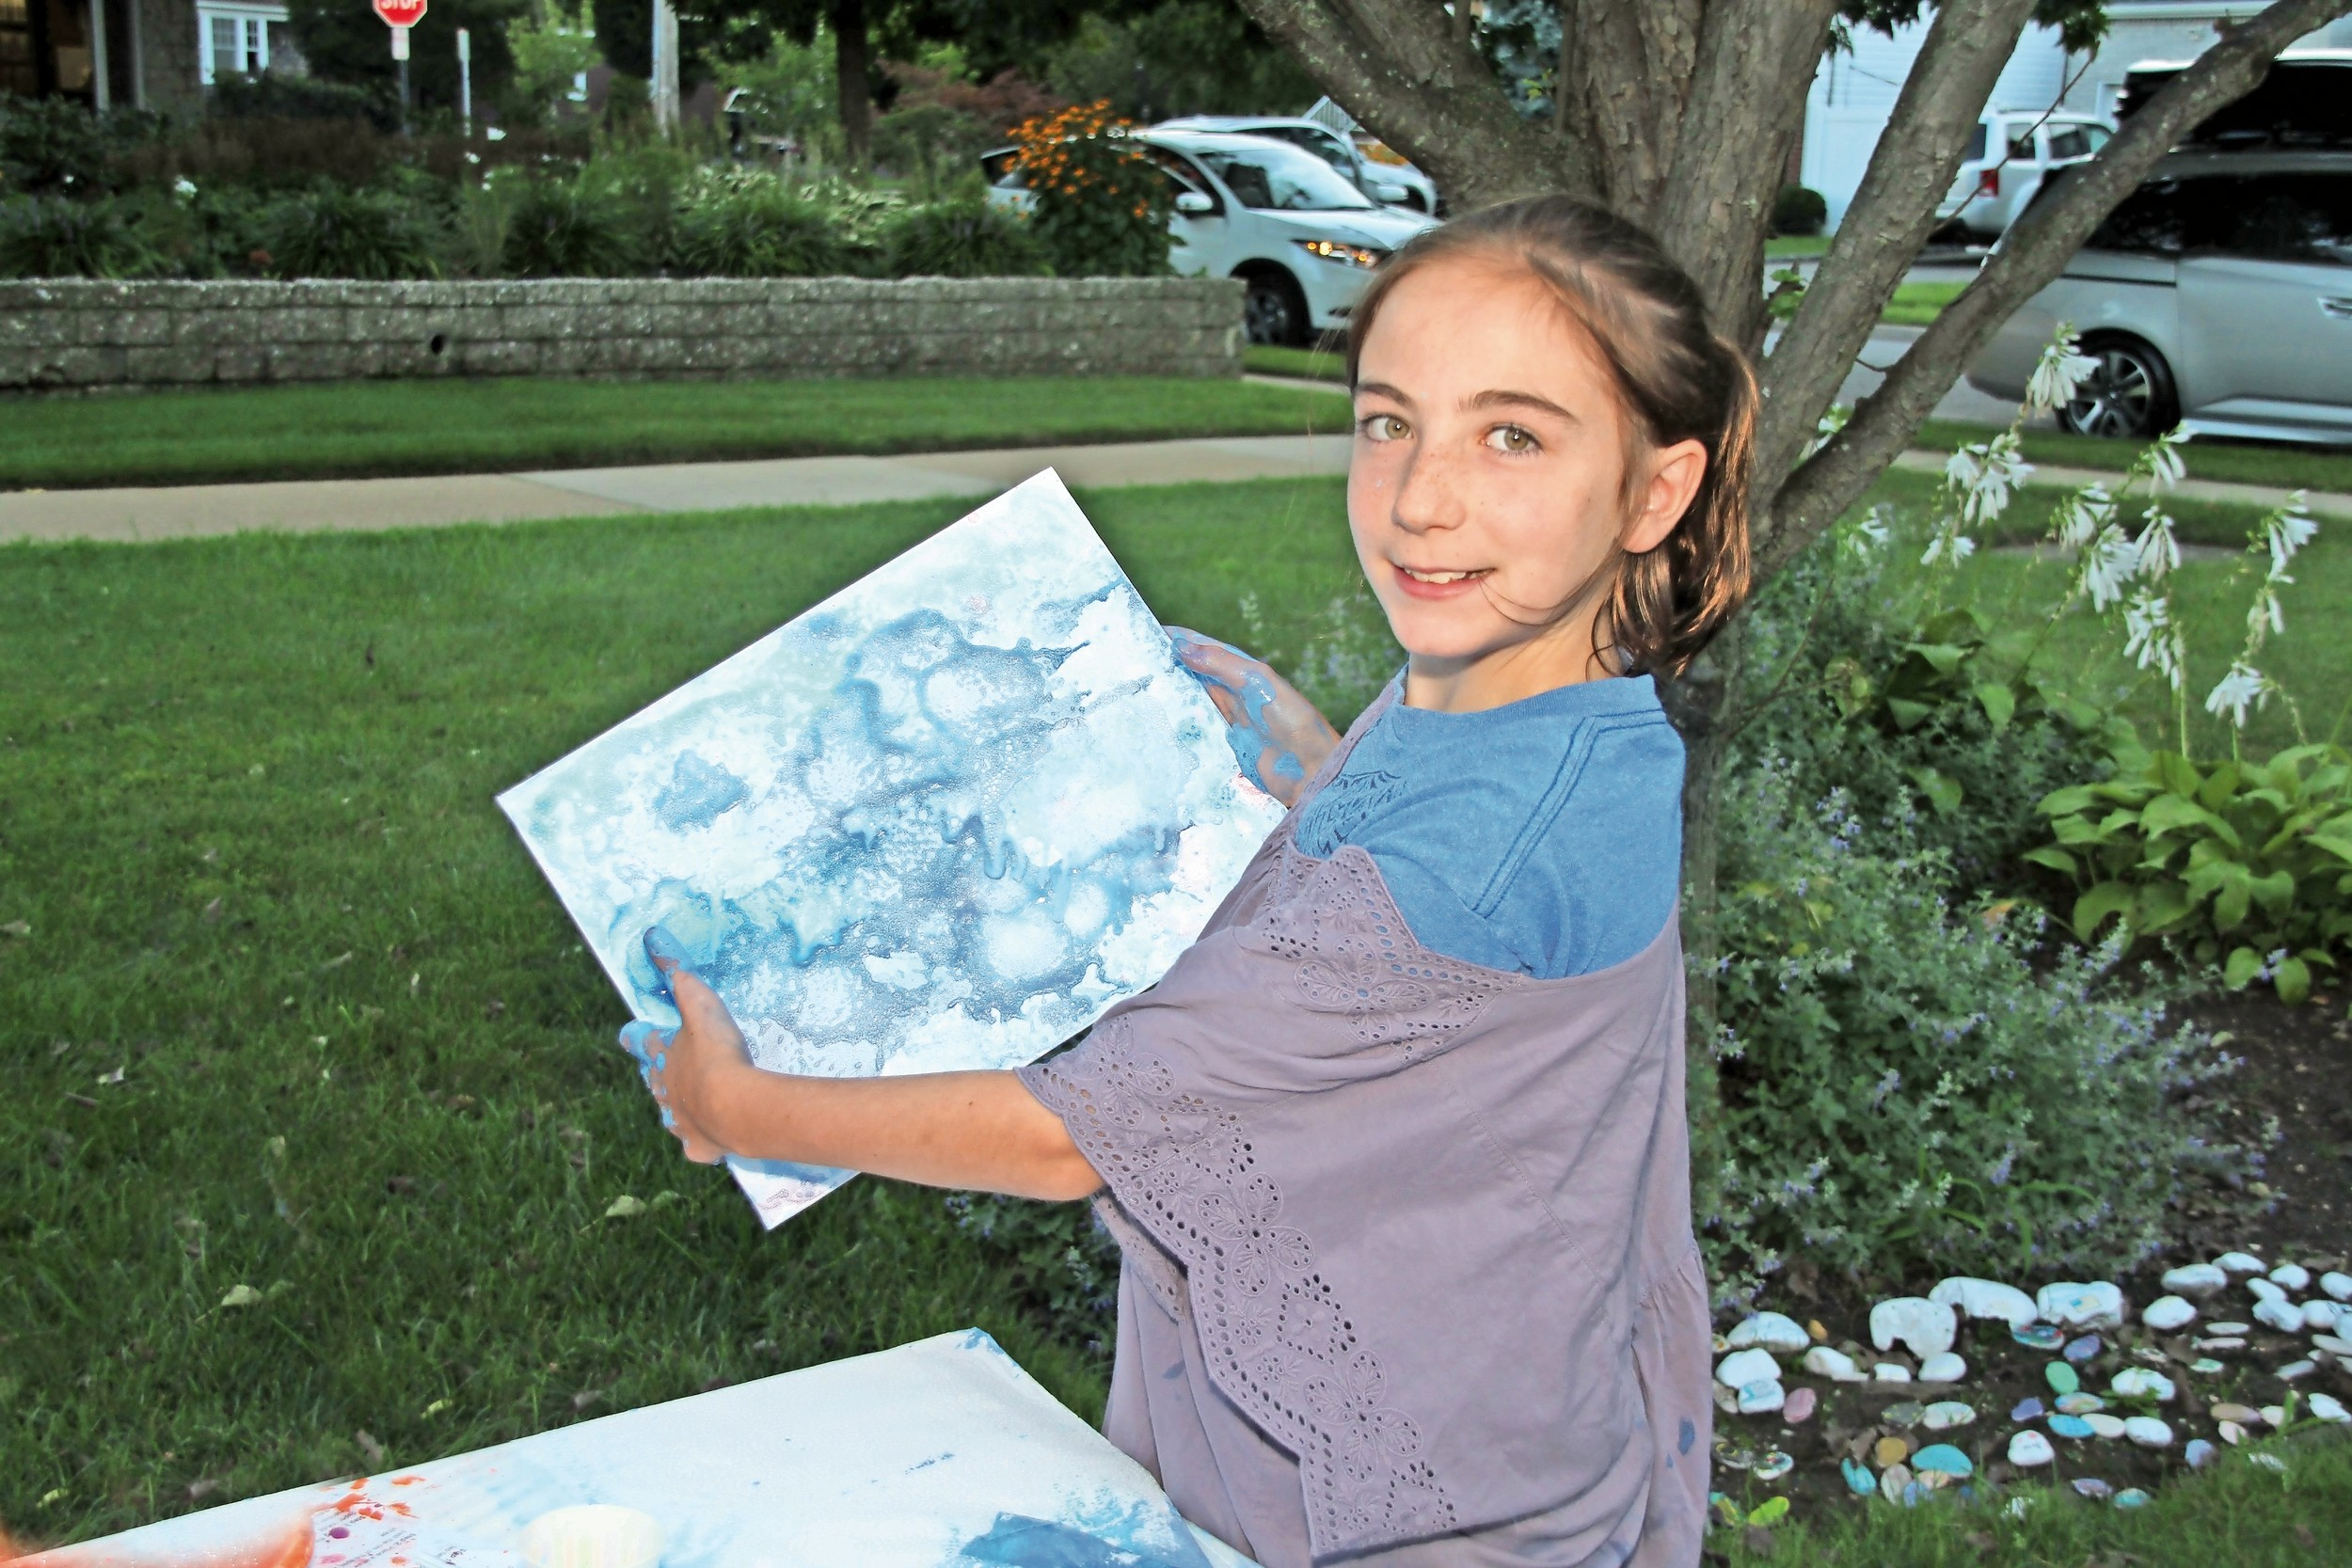 Arielle Combs, 12, showed off her painting.